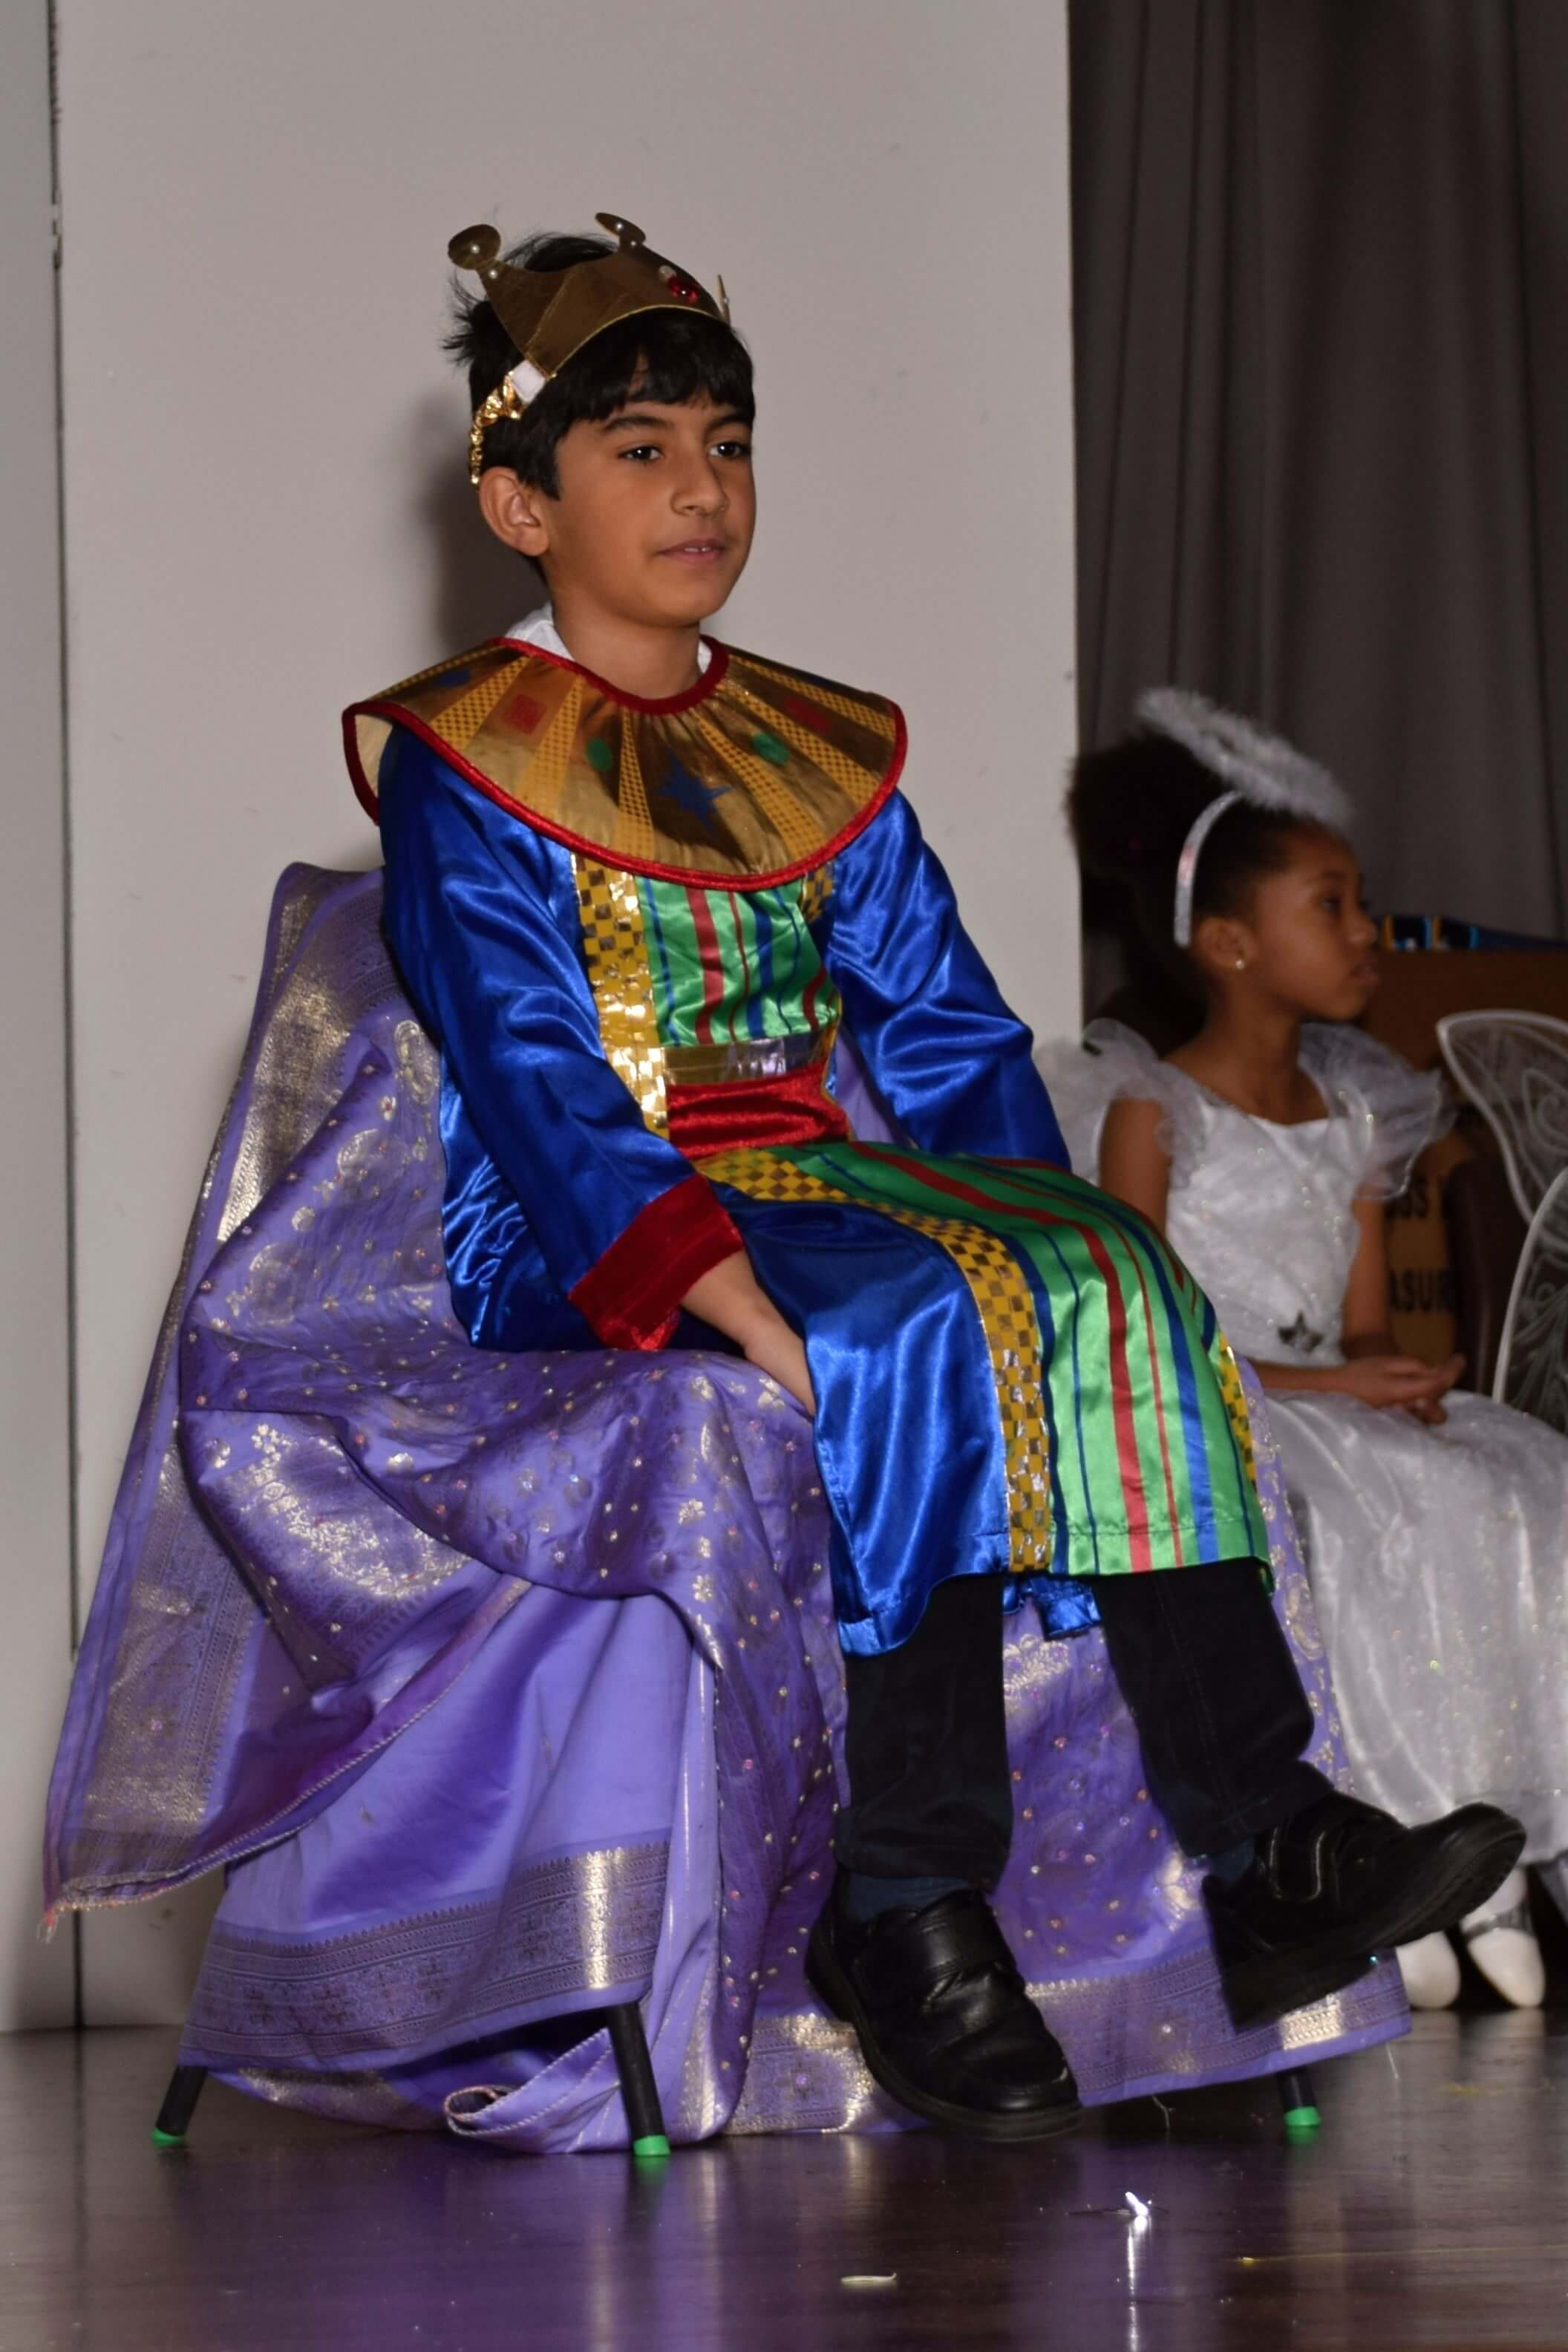 christmas play, king on throne